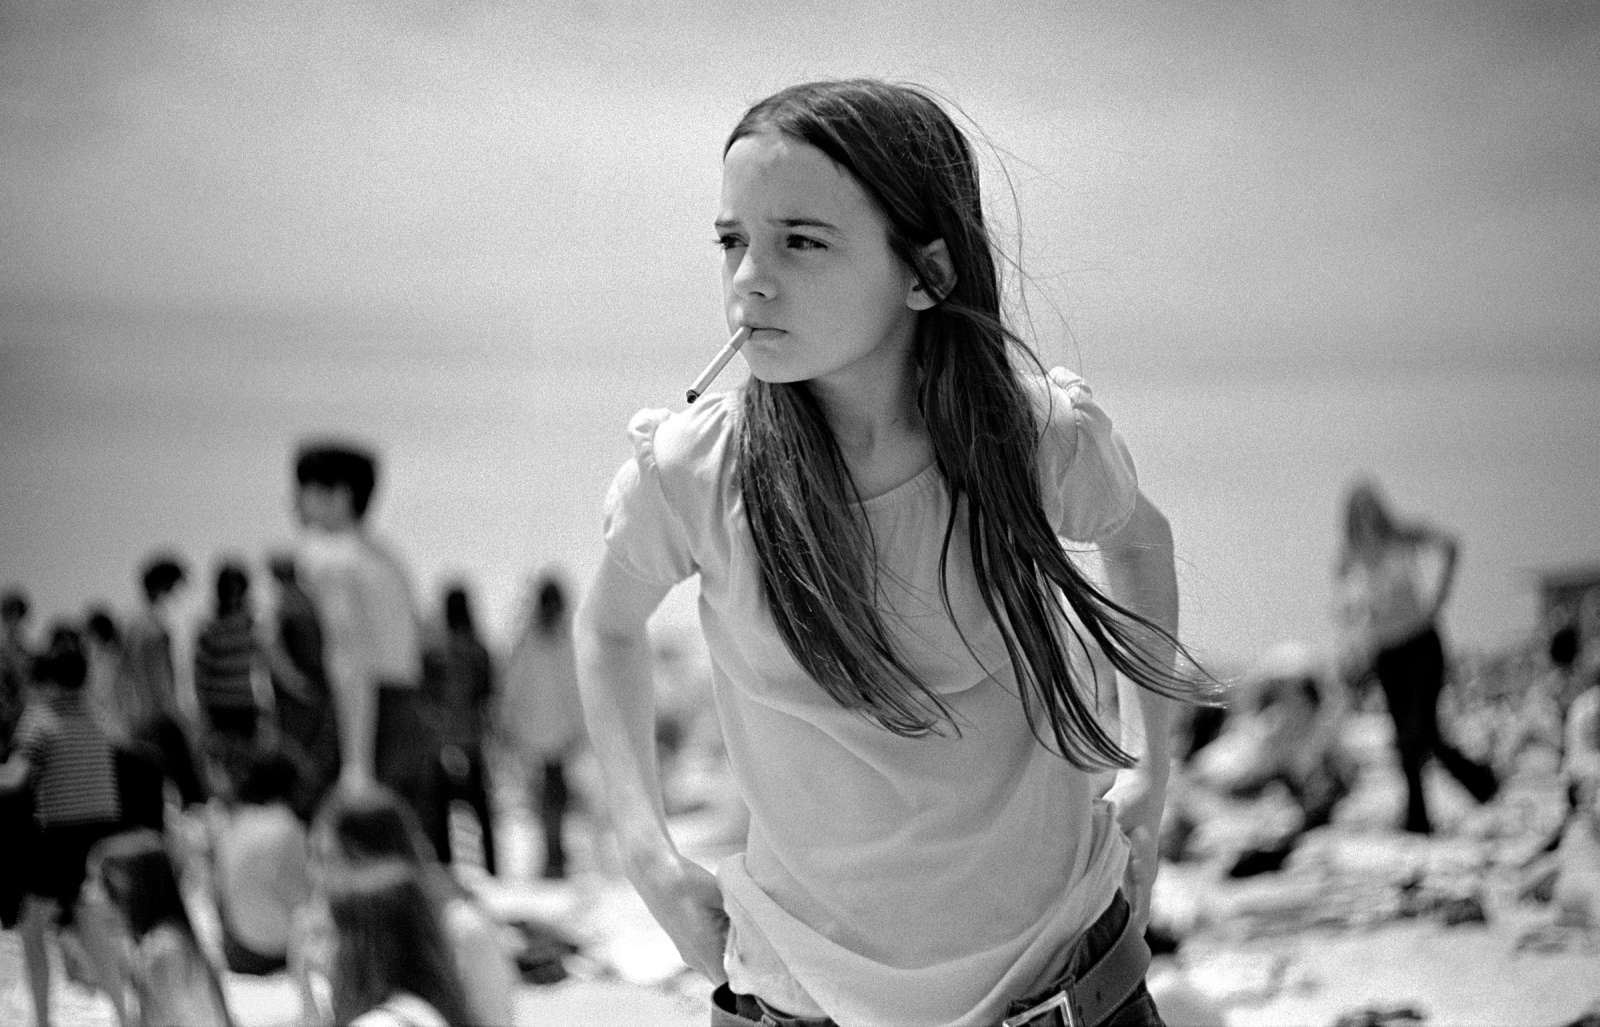 Priscilla, Jones Beach, 1969